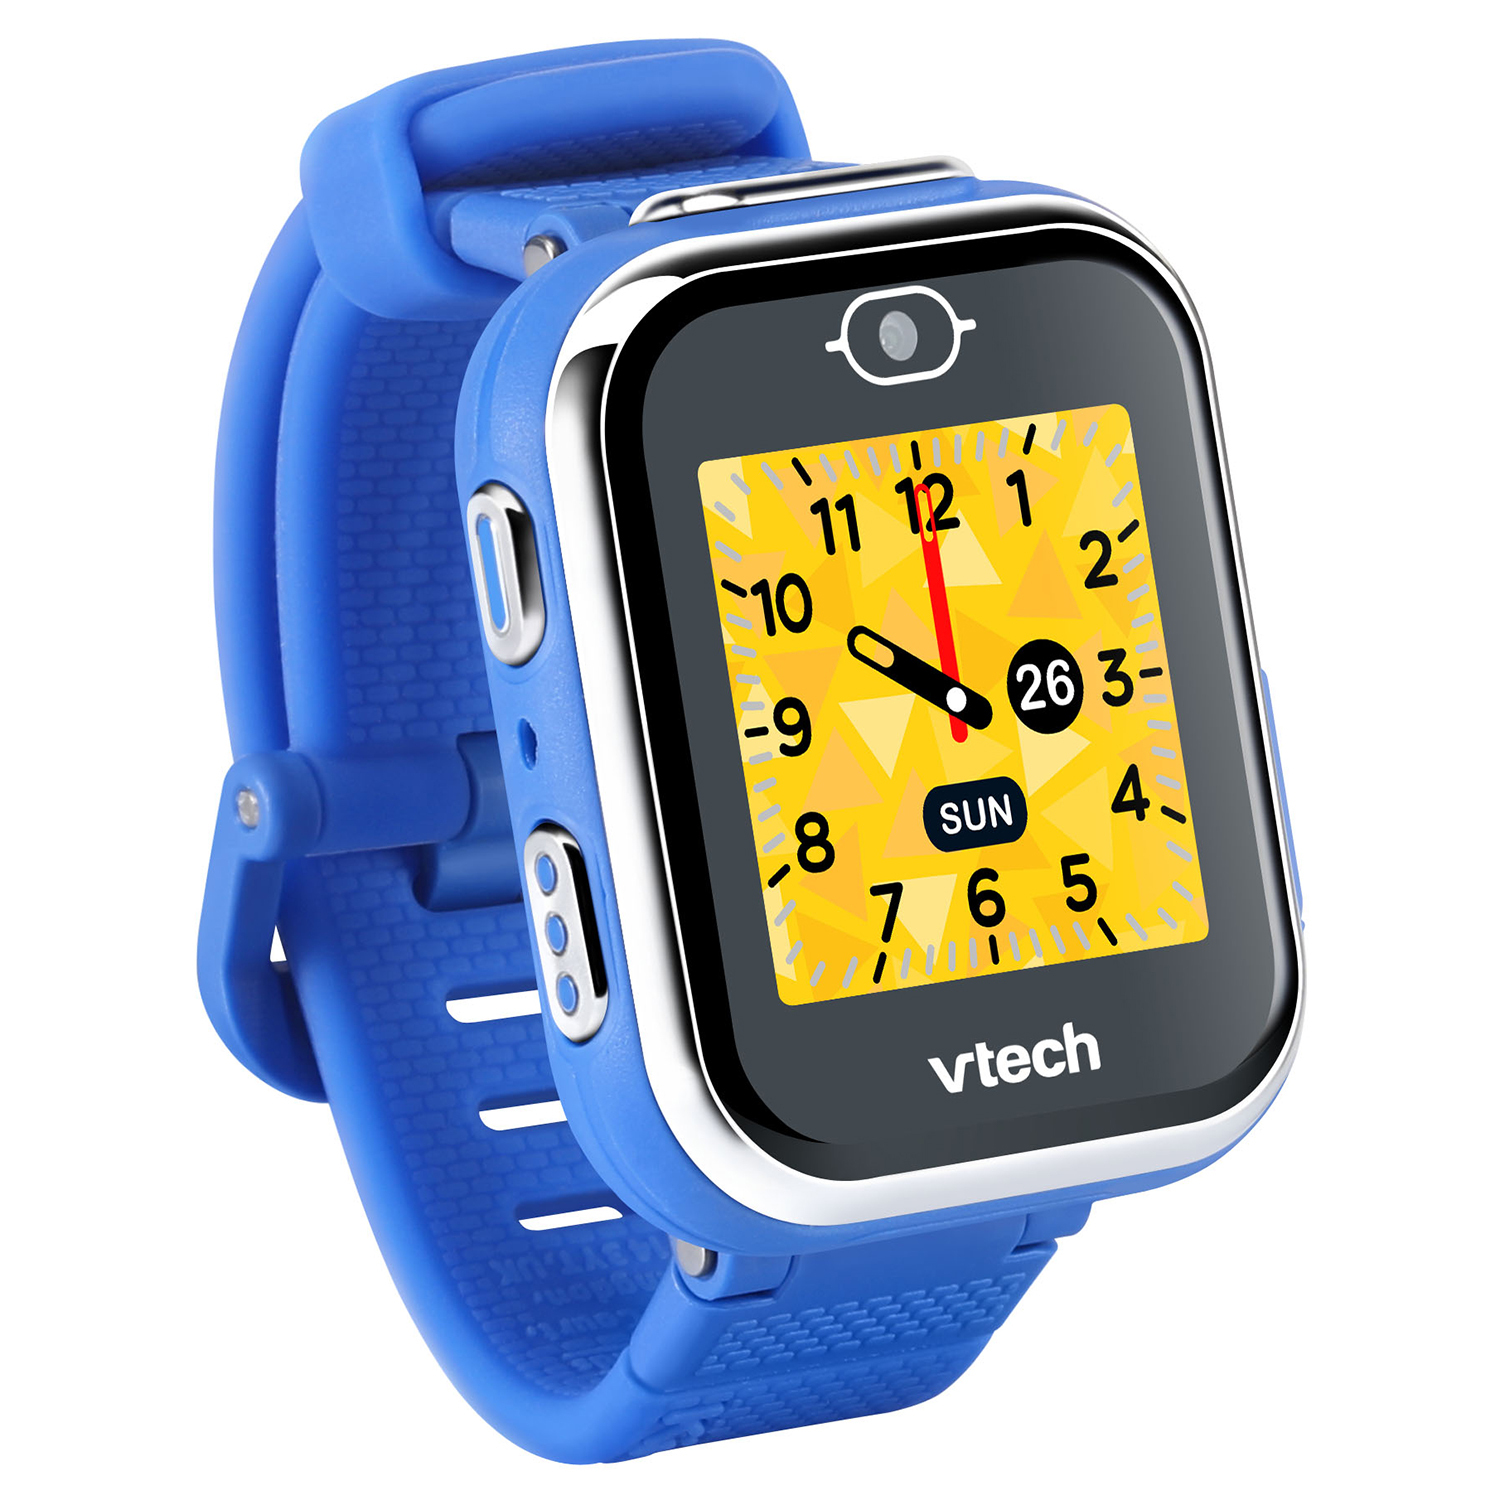 Best Smartwatch for Younger Kids: VTech Kidizoom Smartwatch DX3